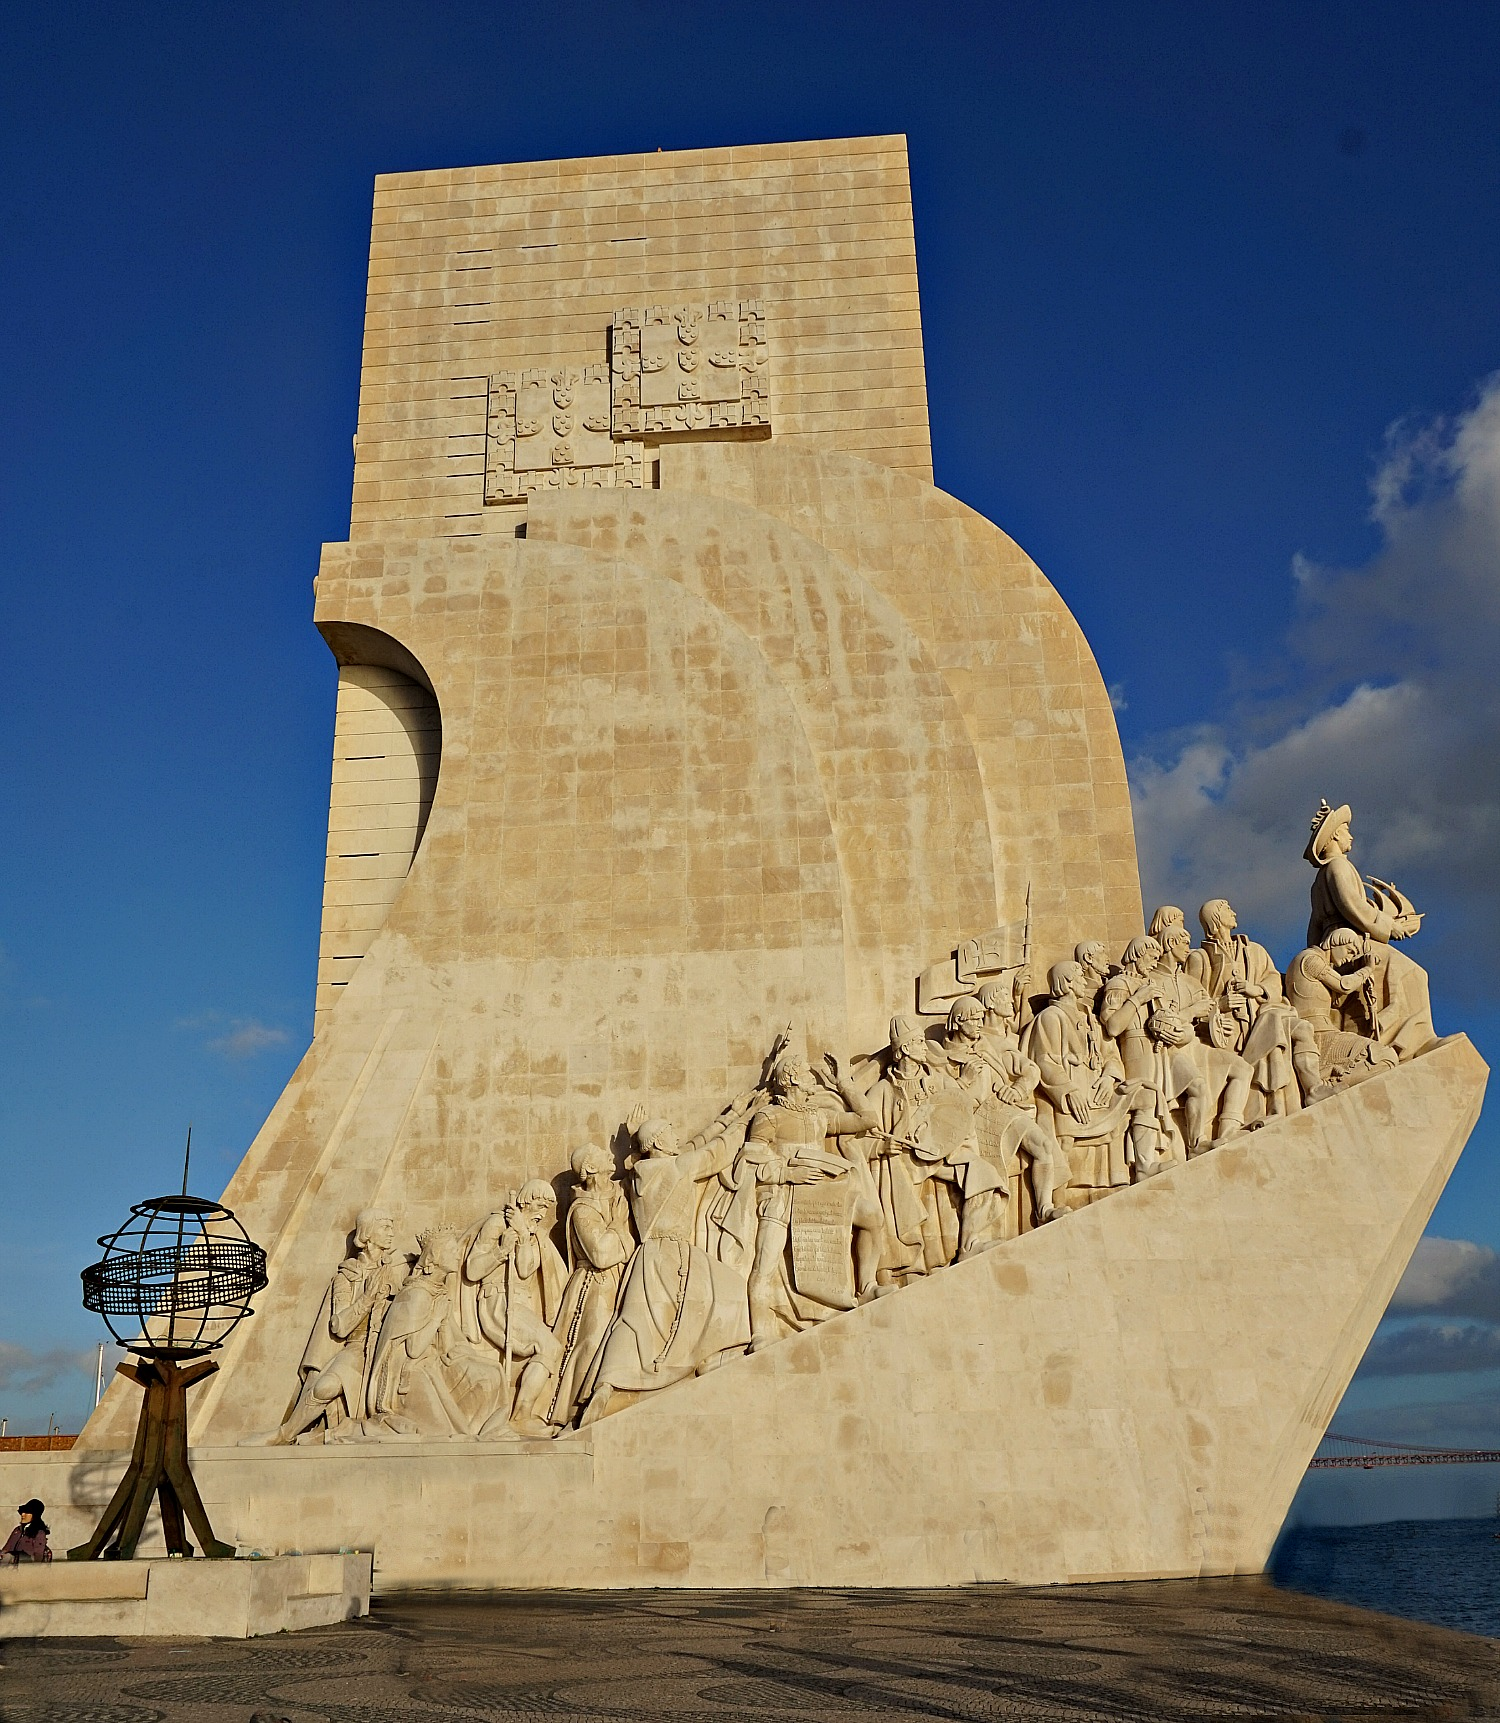 Portugal - one week itinerary. Monument of Discoveries pays tribute to Portuguese explorers.